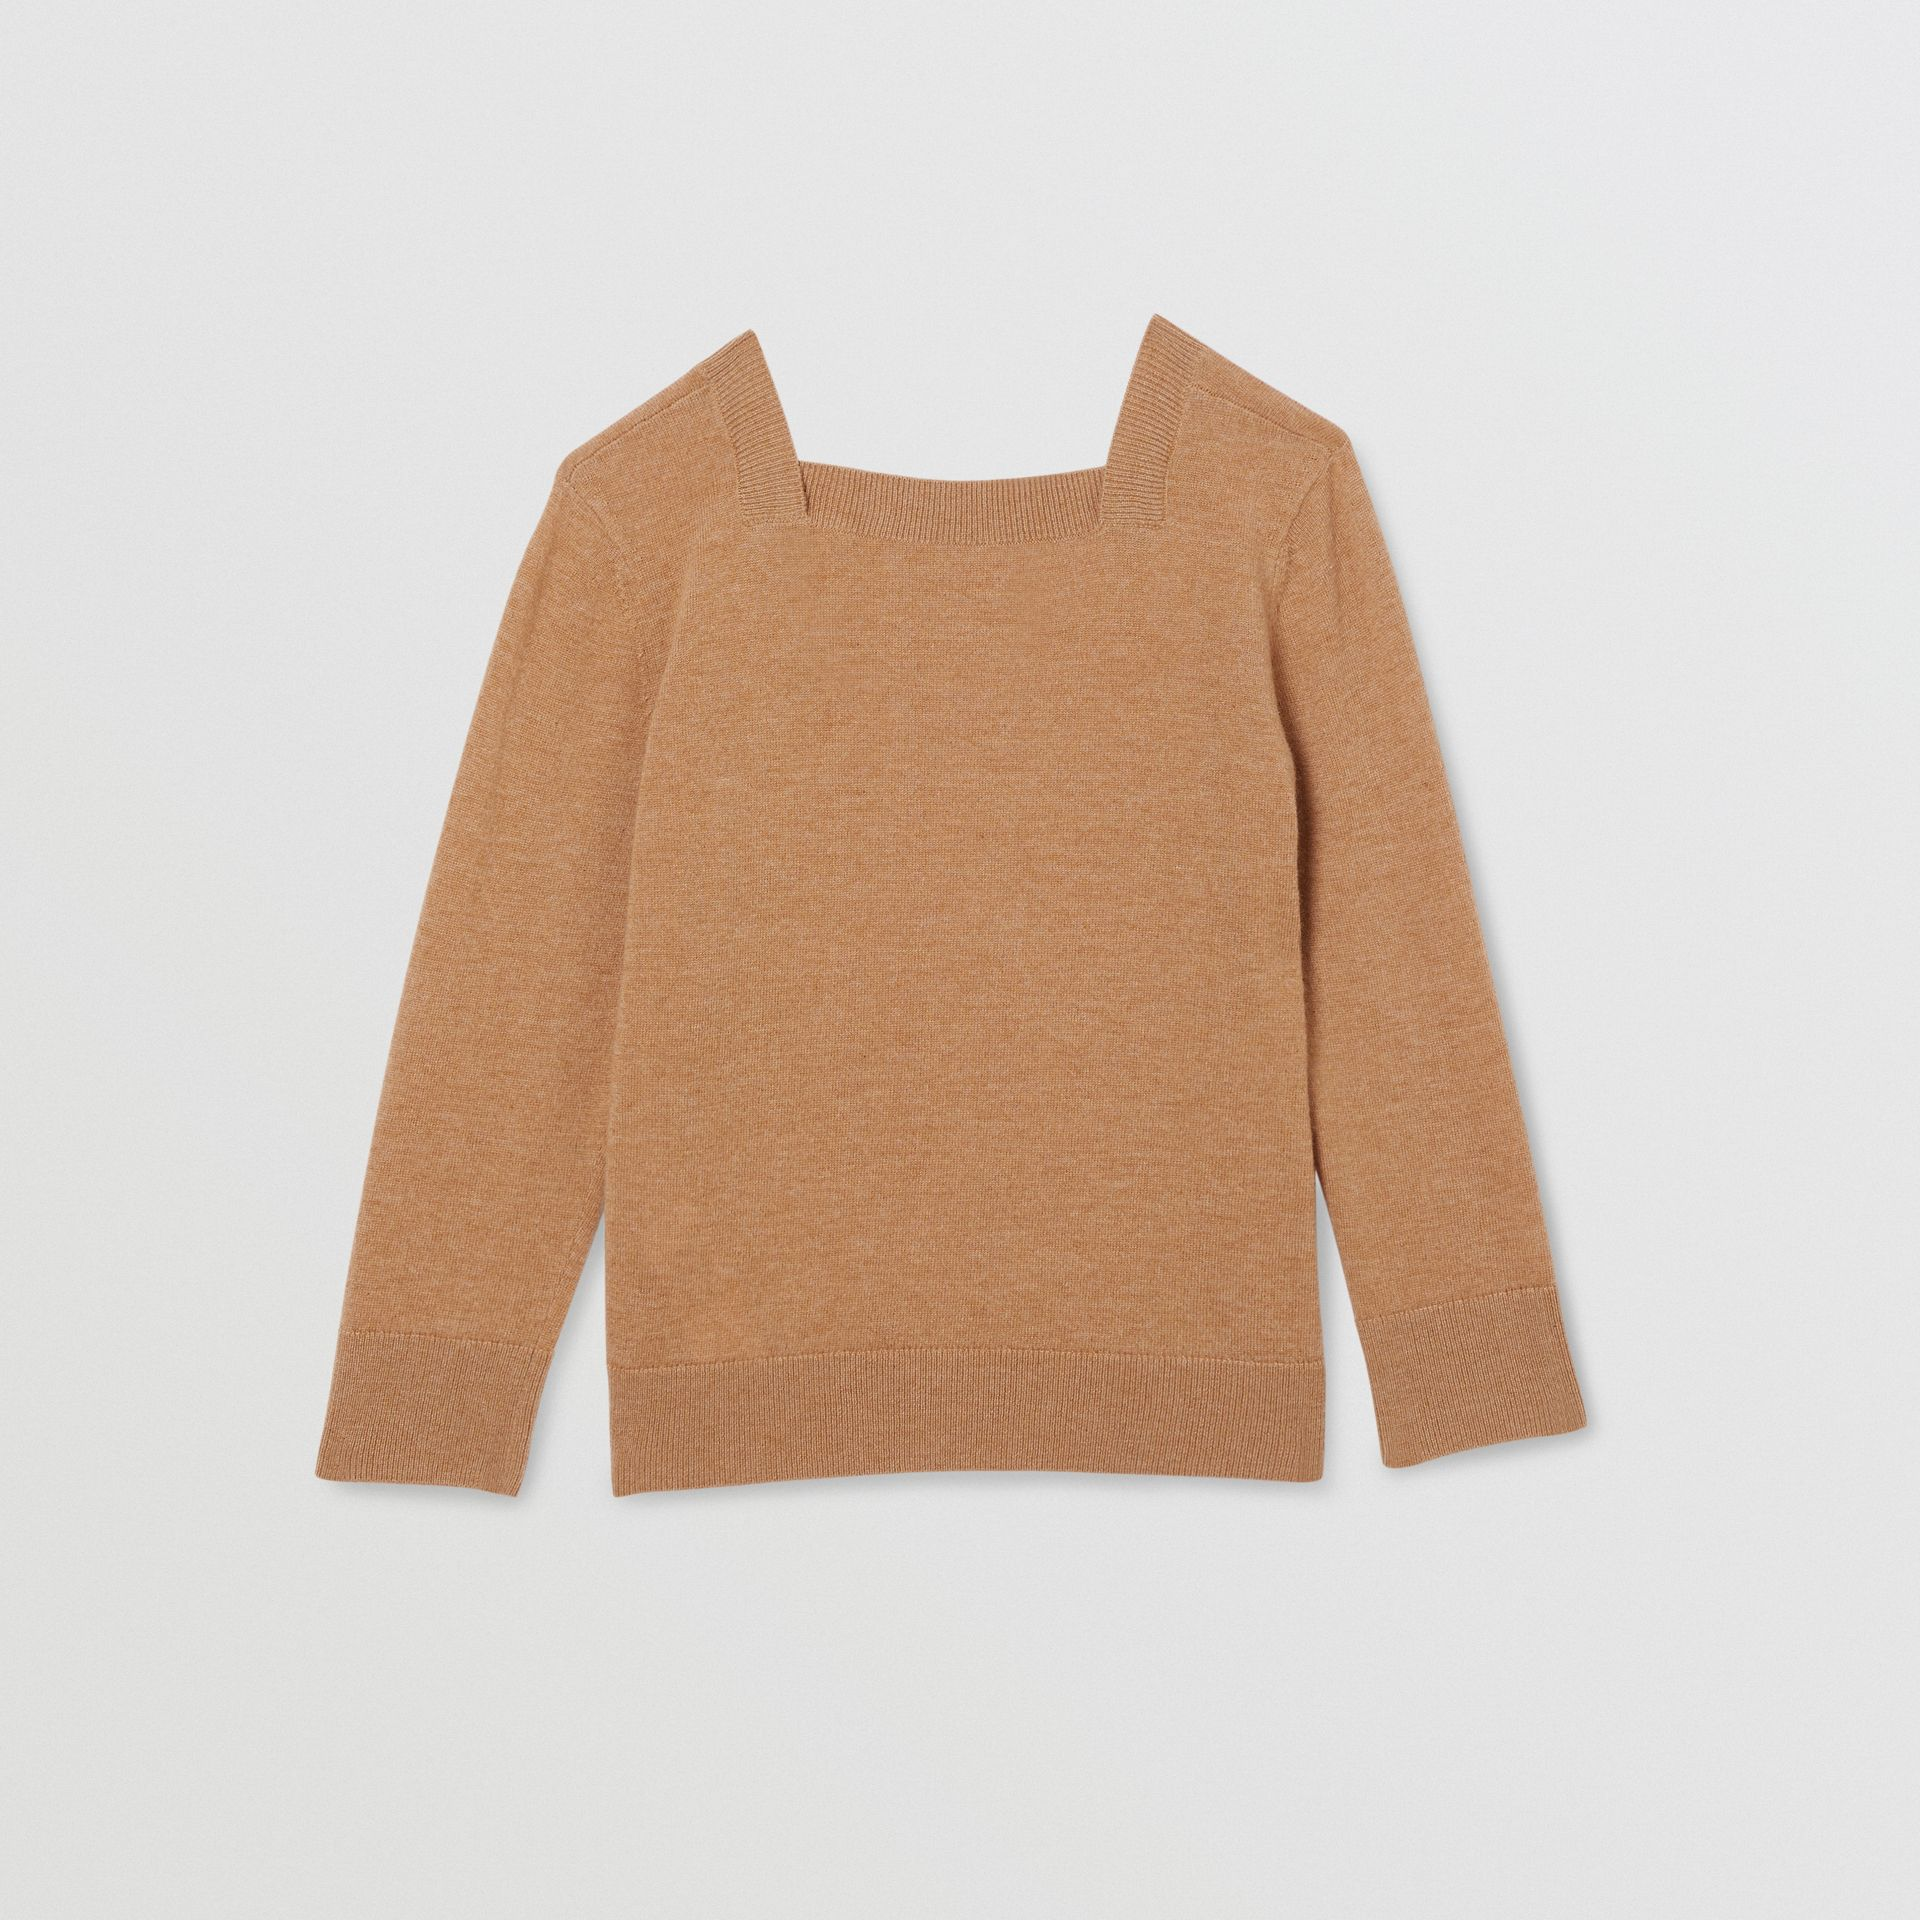 Monogram Motif Cashmere Sweater in Camel | Burberry - gallery image 4